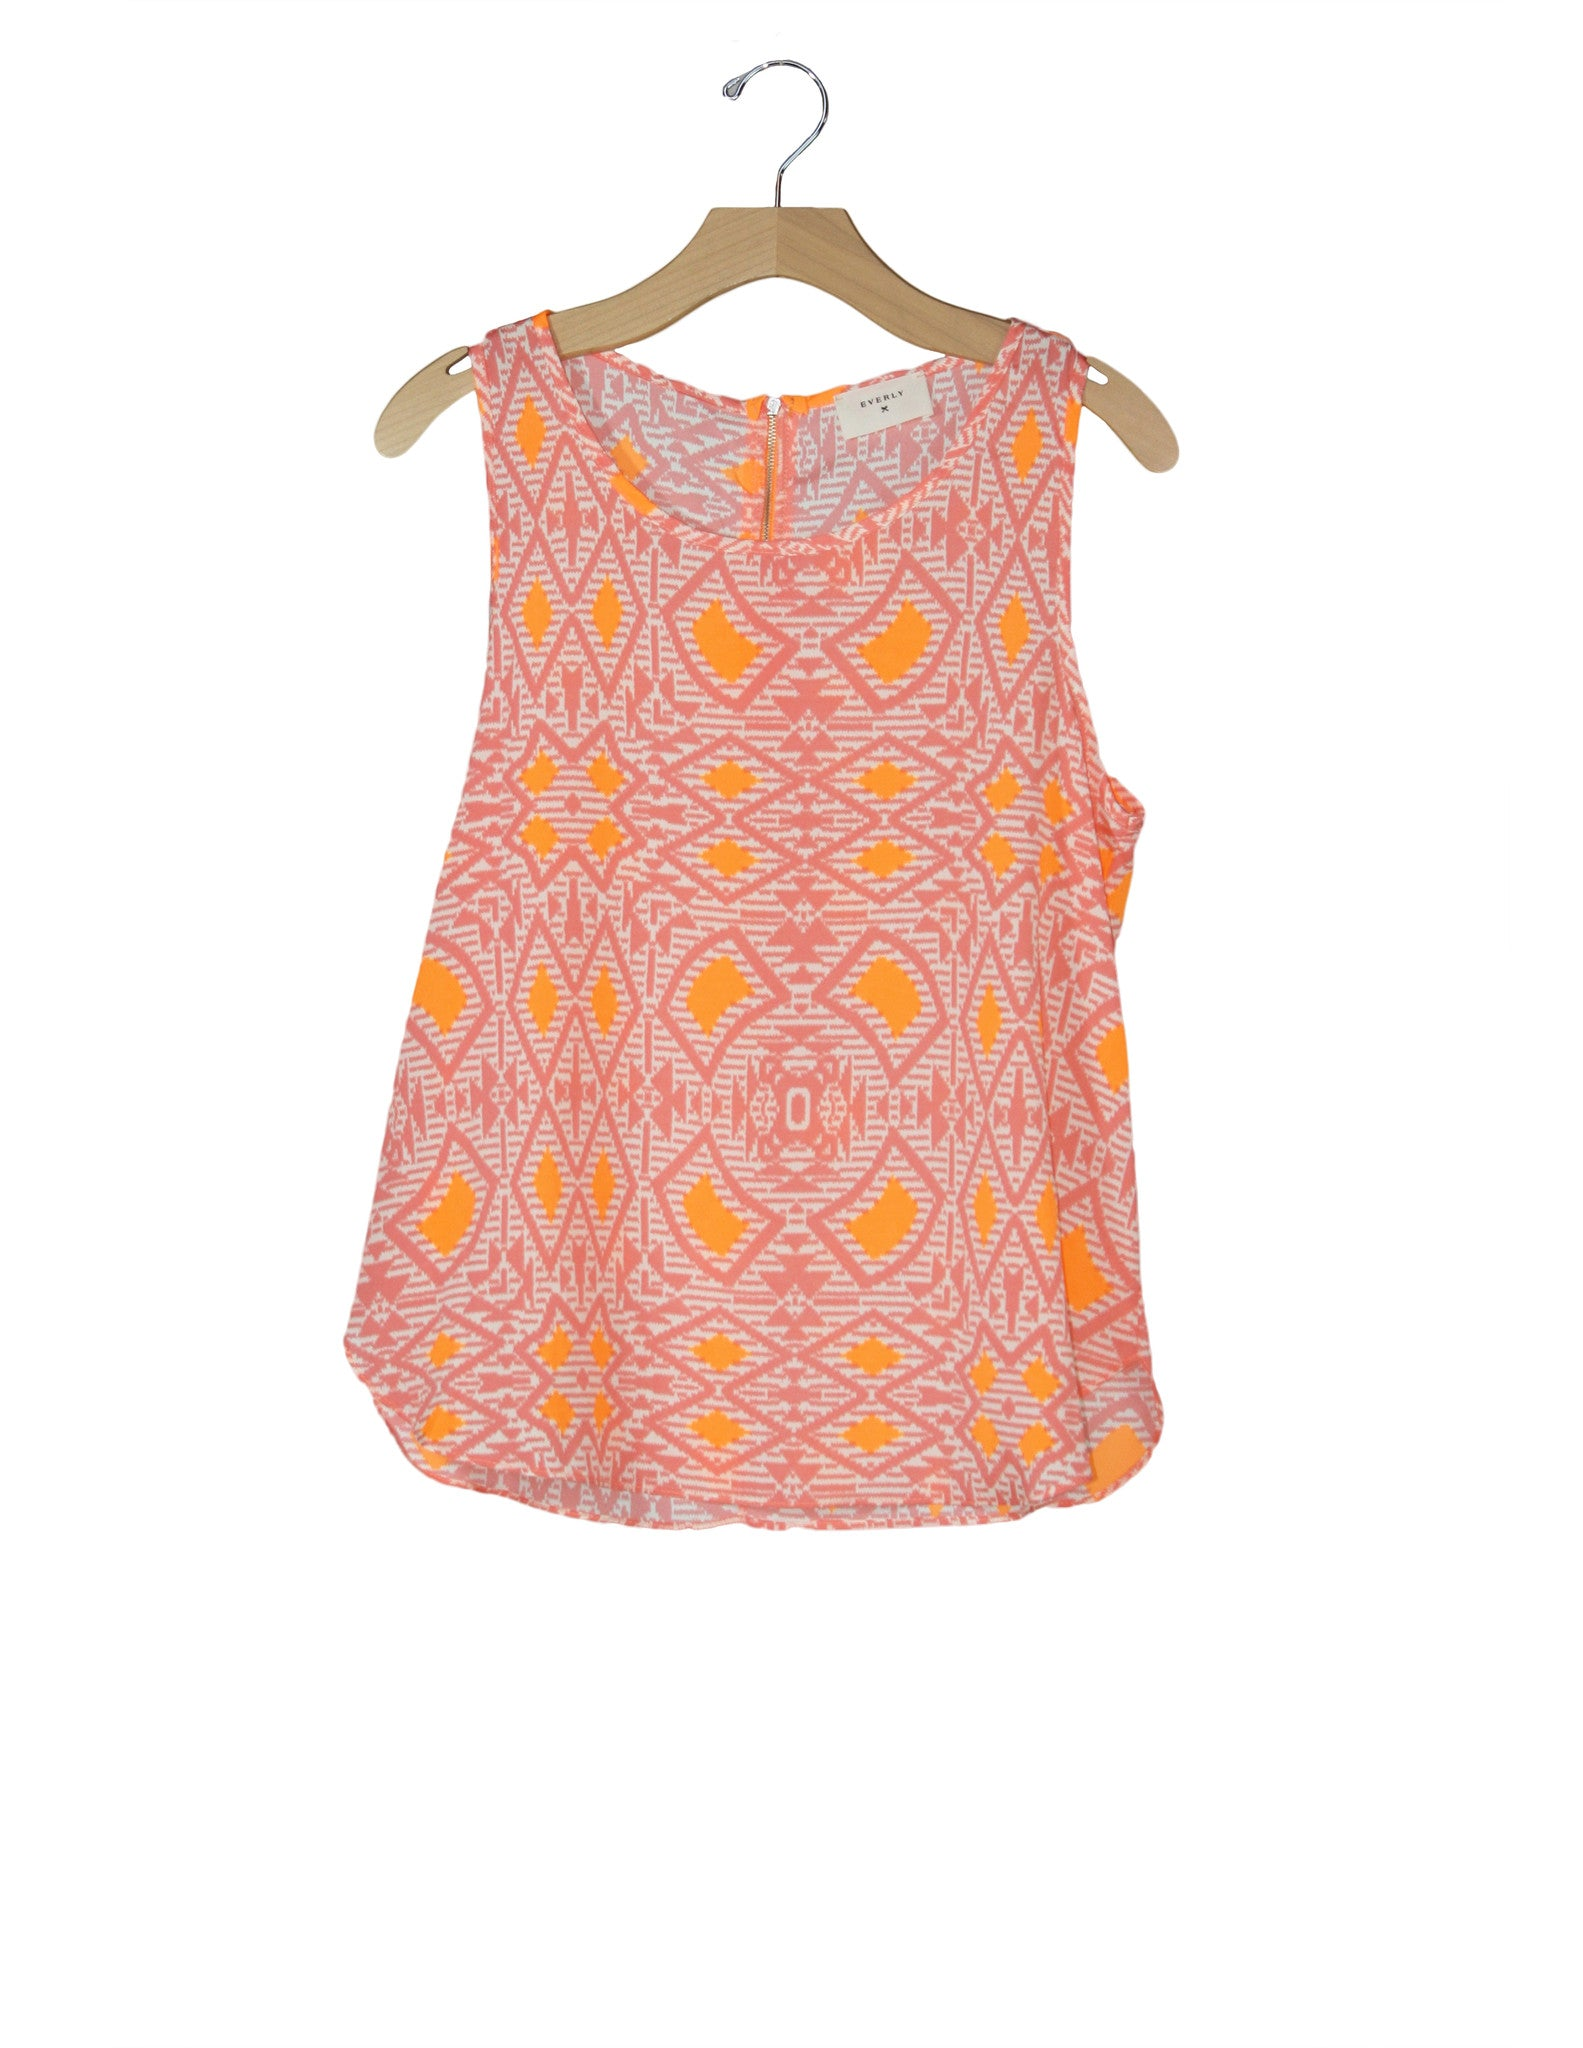 Orange Sorbet Top / Ethical Fashion